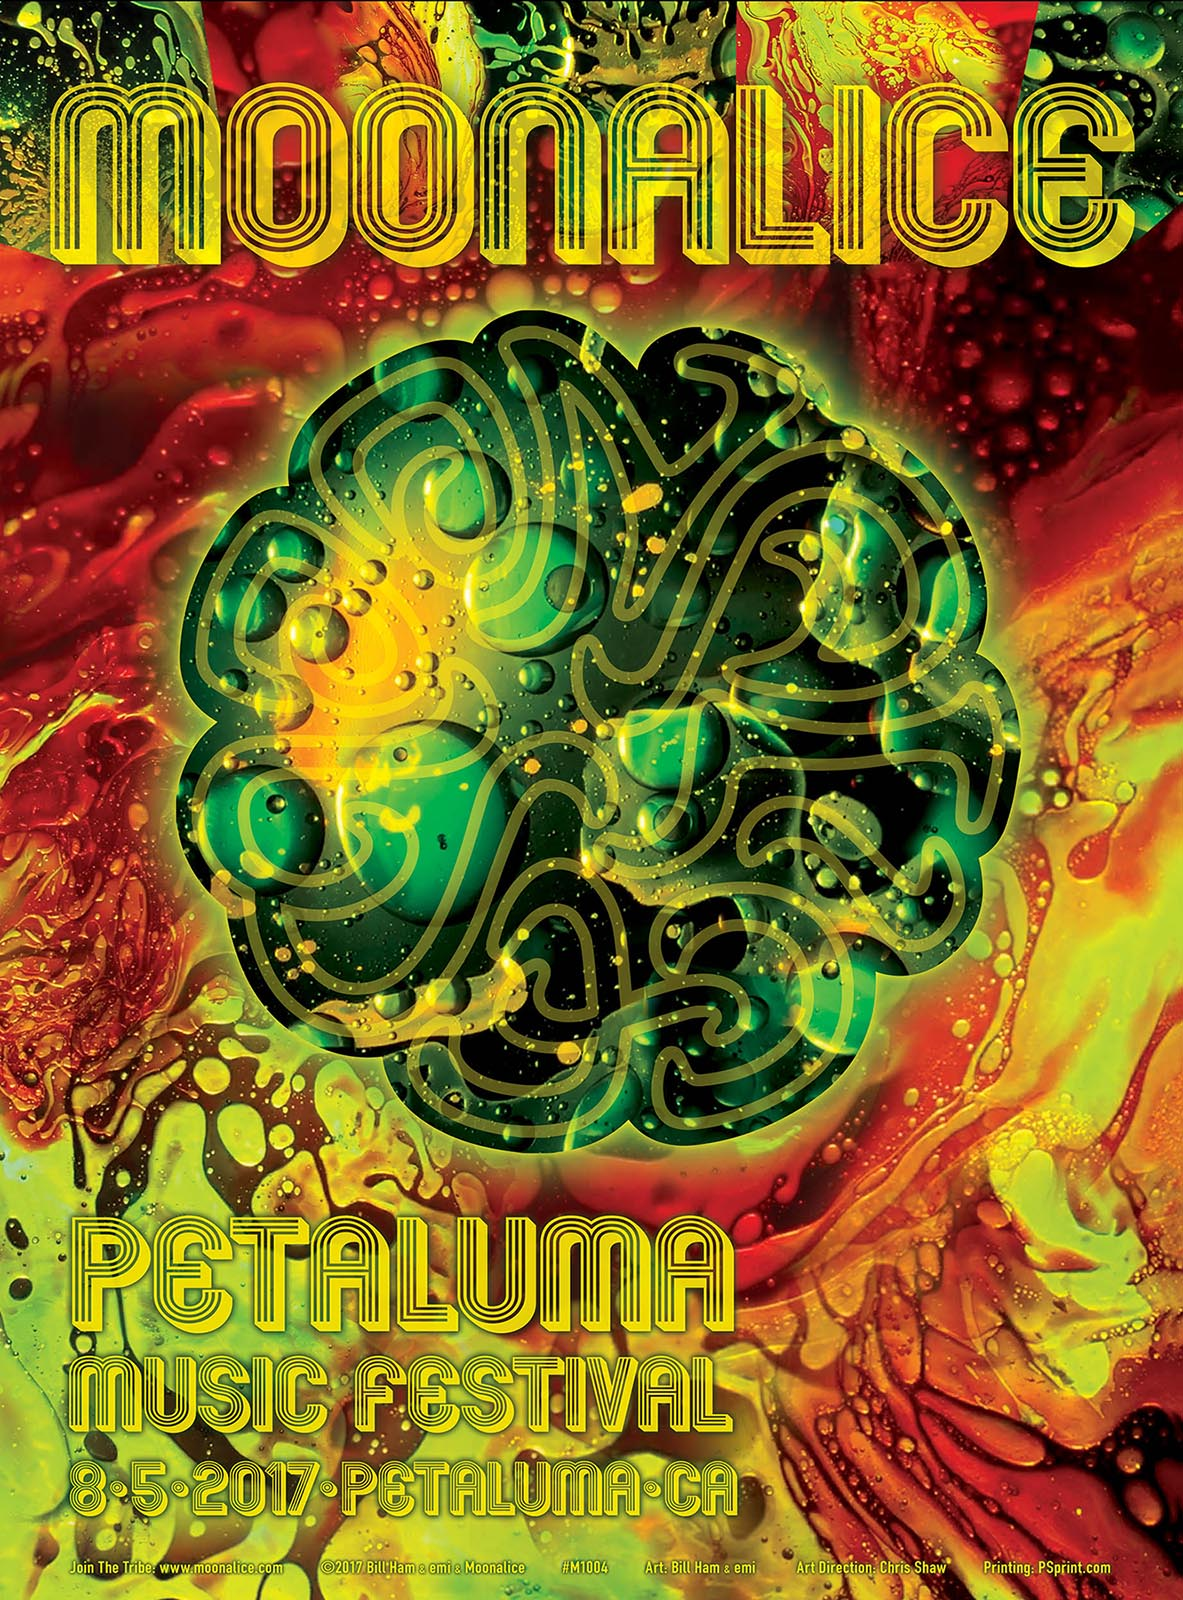 Moonalice poster for Petaluma Music Festival 2017.  Light painting by Bill Ham, photo and poster design by emi